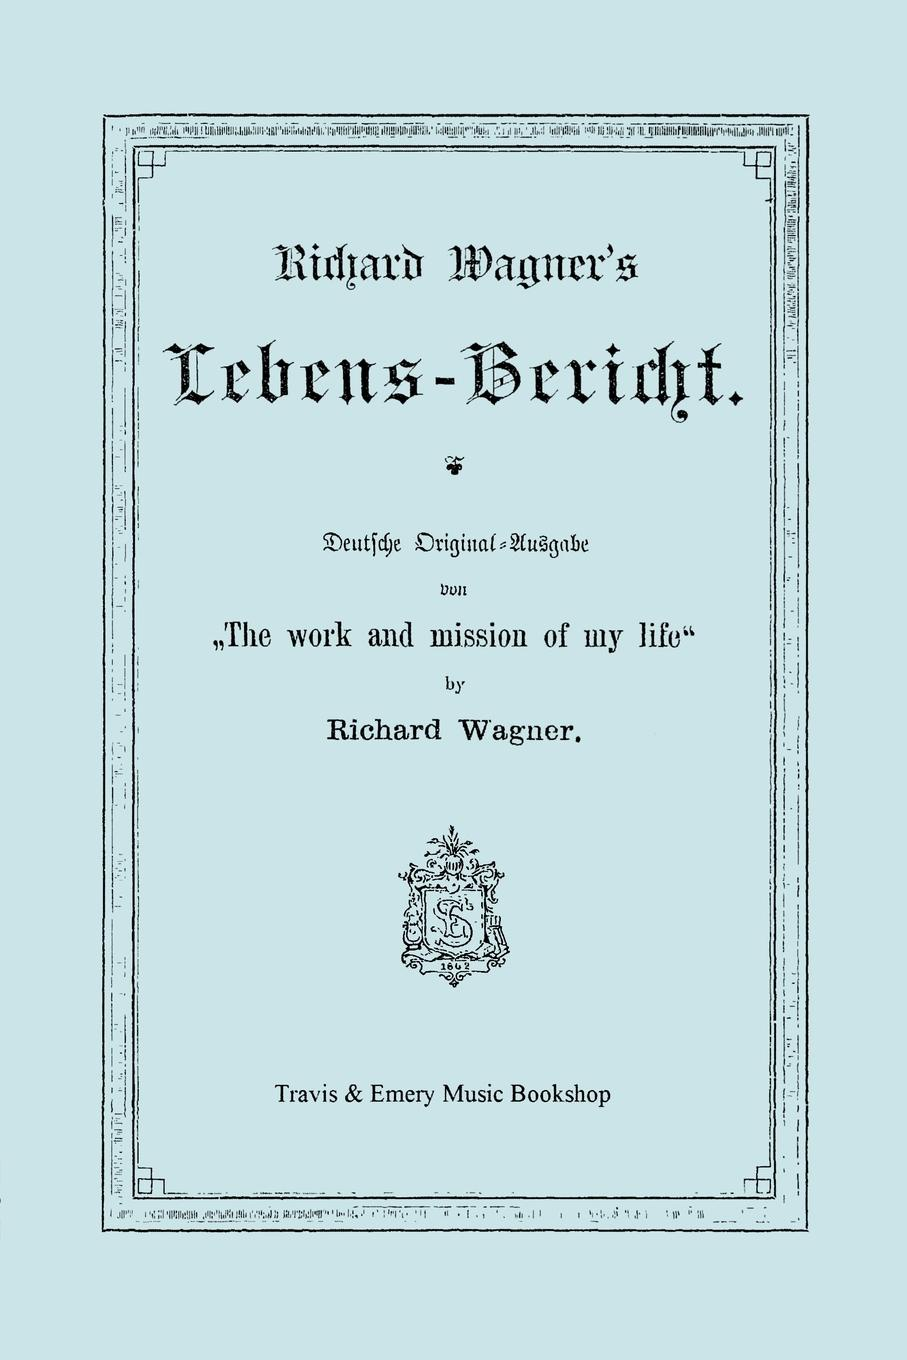 Richard Wagner Richard Wagner's Lebens-Bericht. Deutsche Original-Ausgabe Von the Work and Mission of My Life by Richard Wagner. Facsimile of 1884 Edition, in German richard wagner richard mansfield xml all in one desk reference for dummies